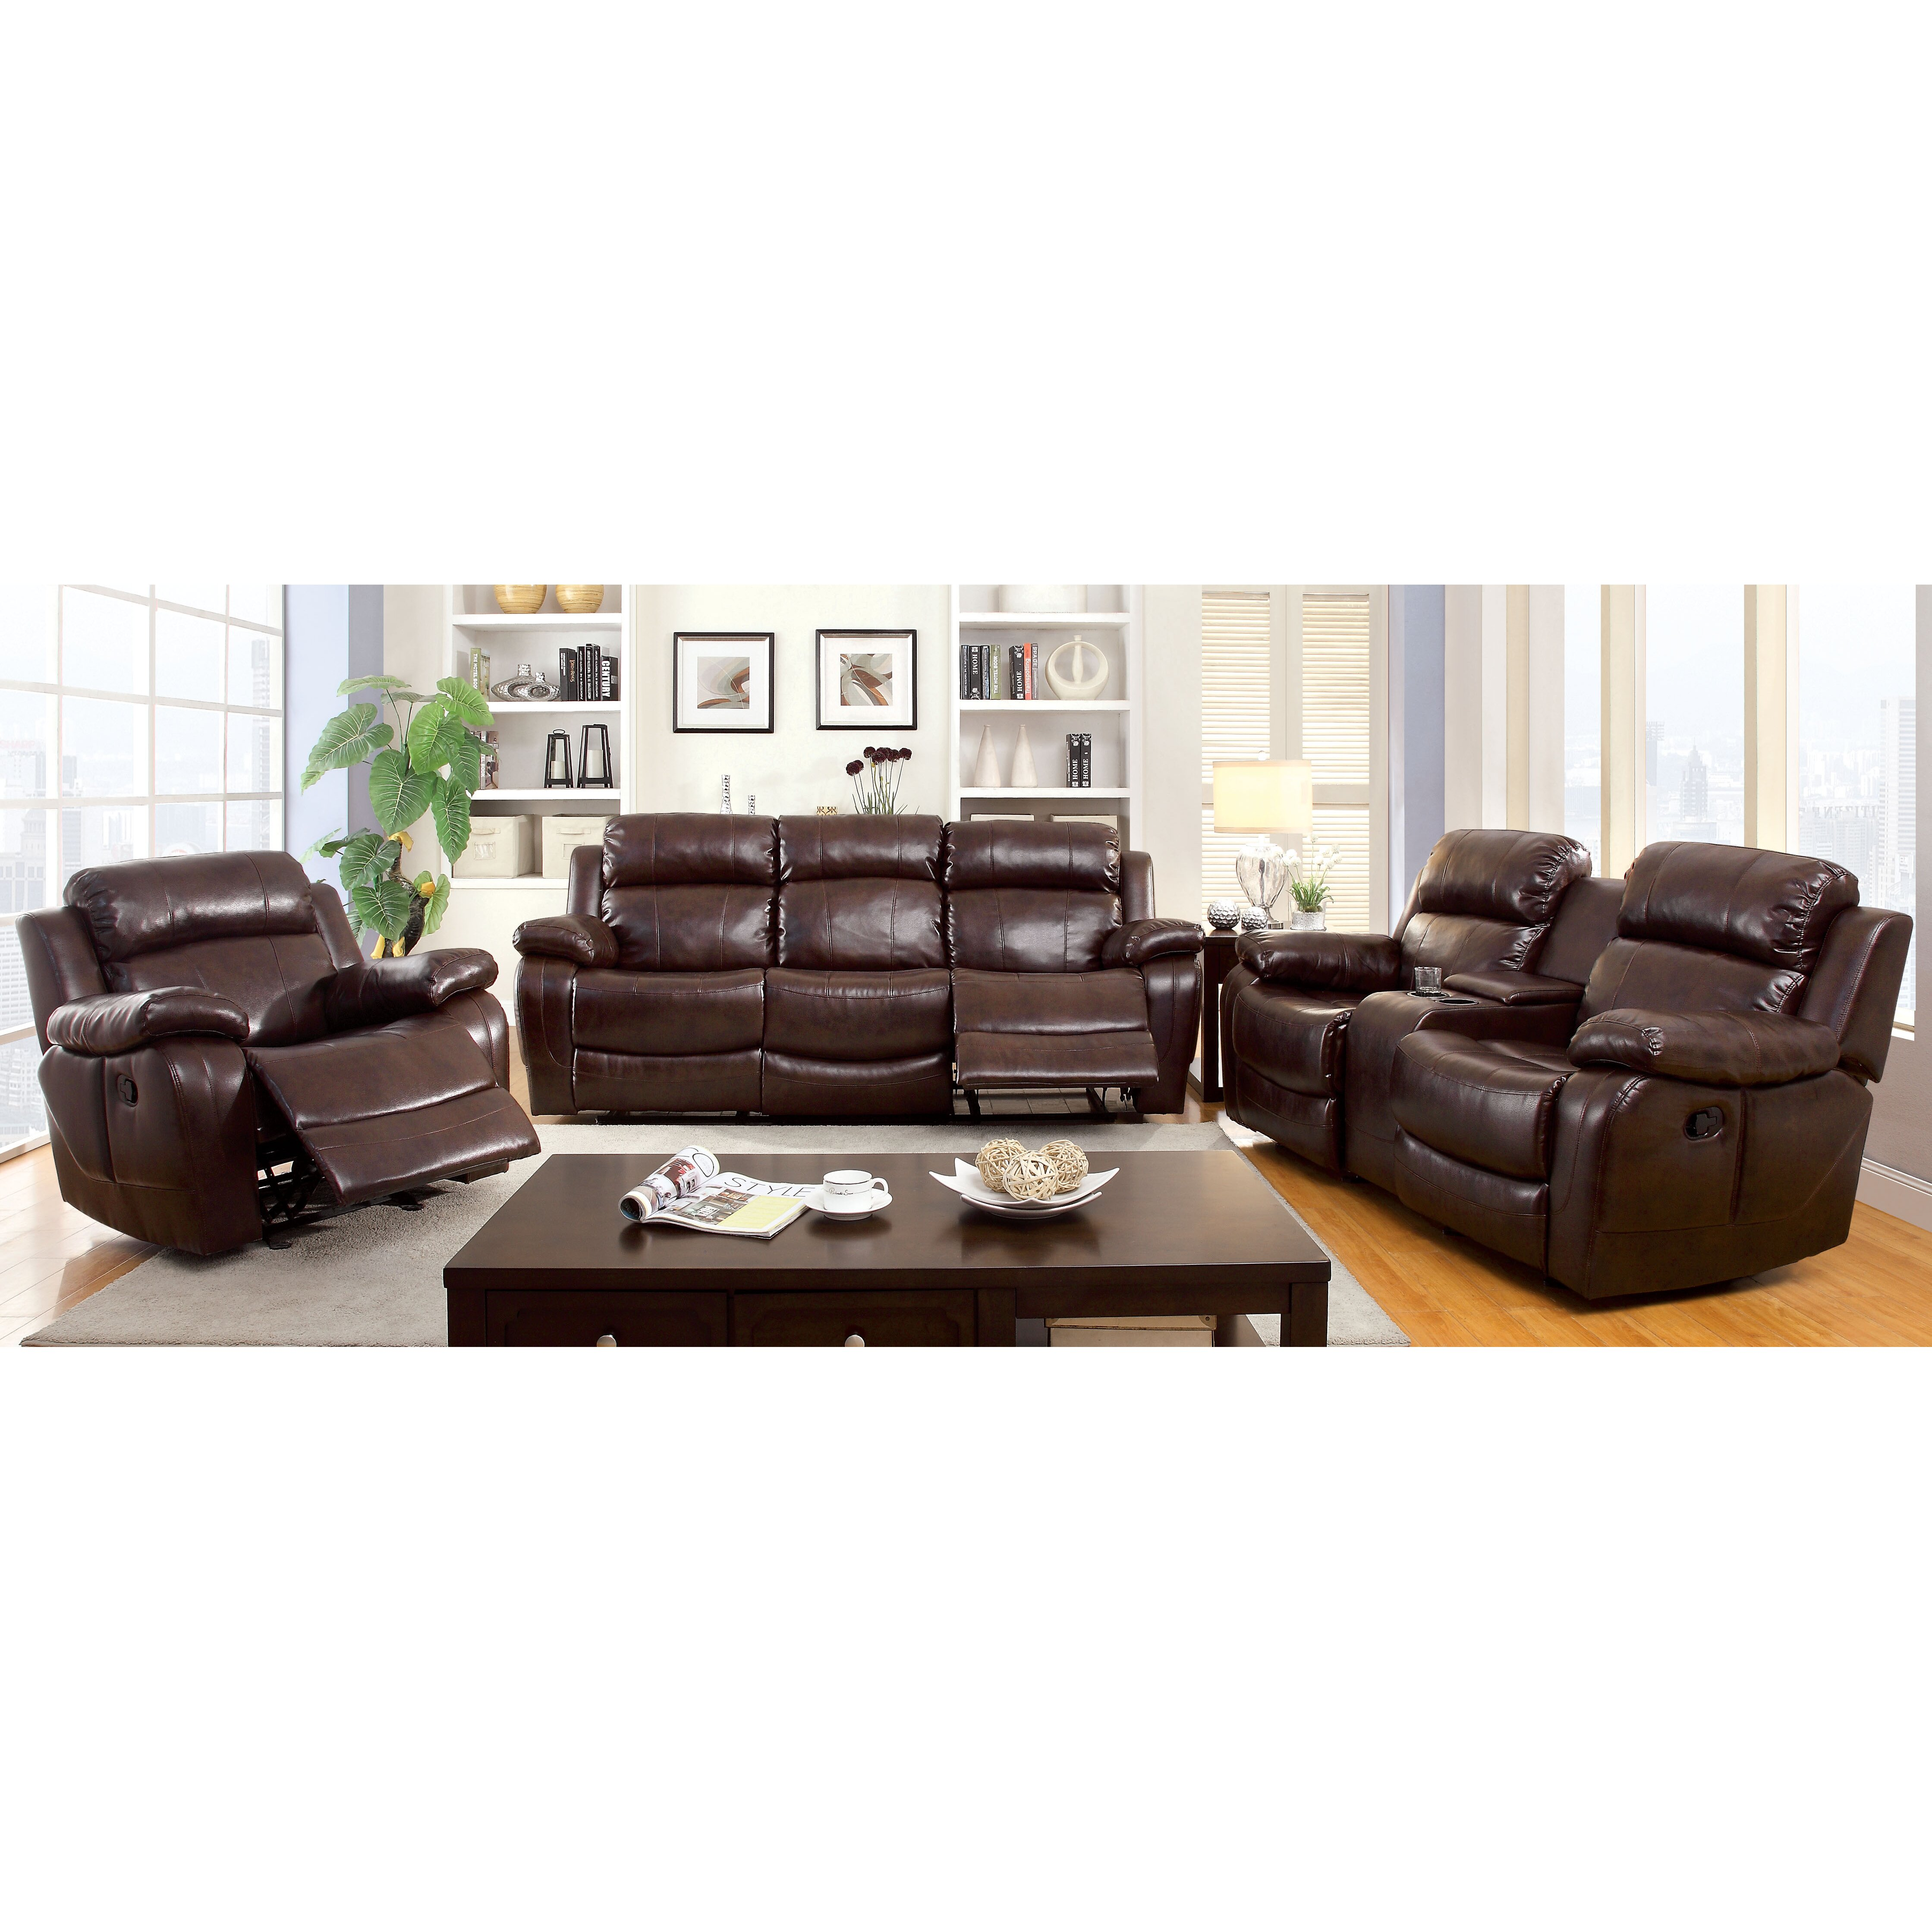 Hokku Designs Walfred Living Room Collection Reviews Wayfair